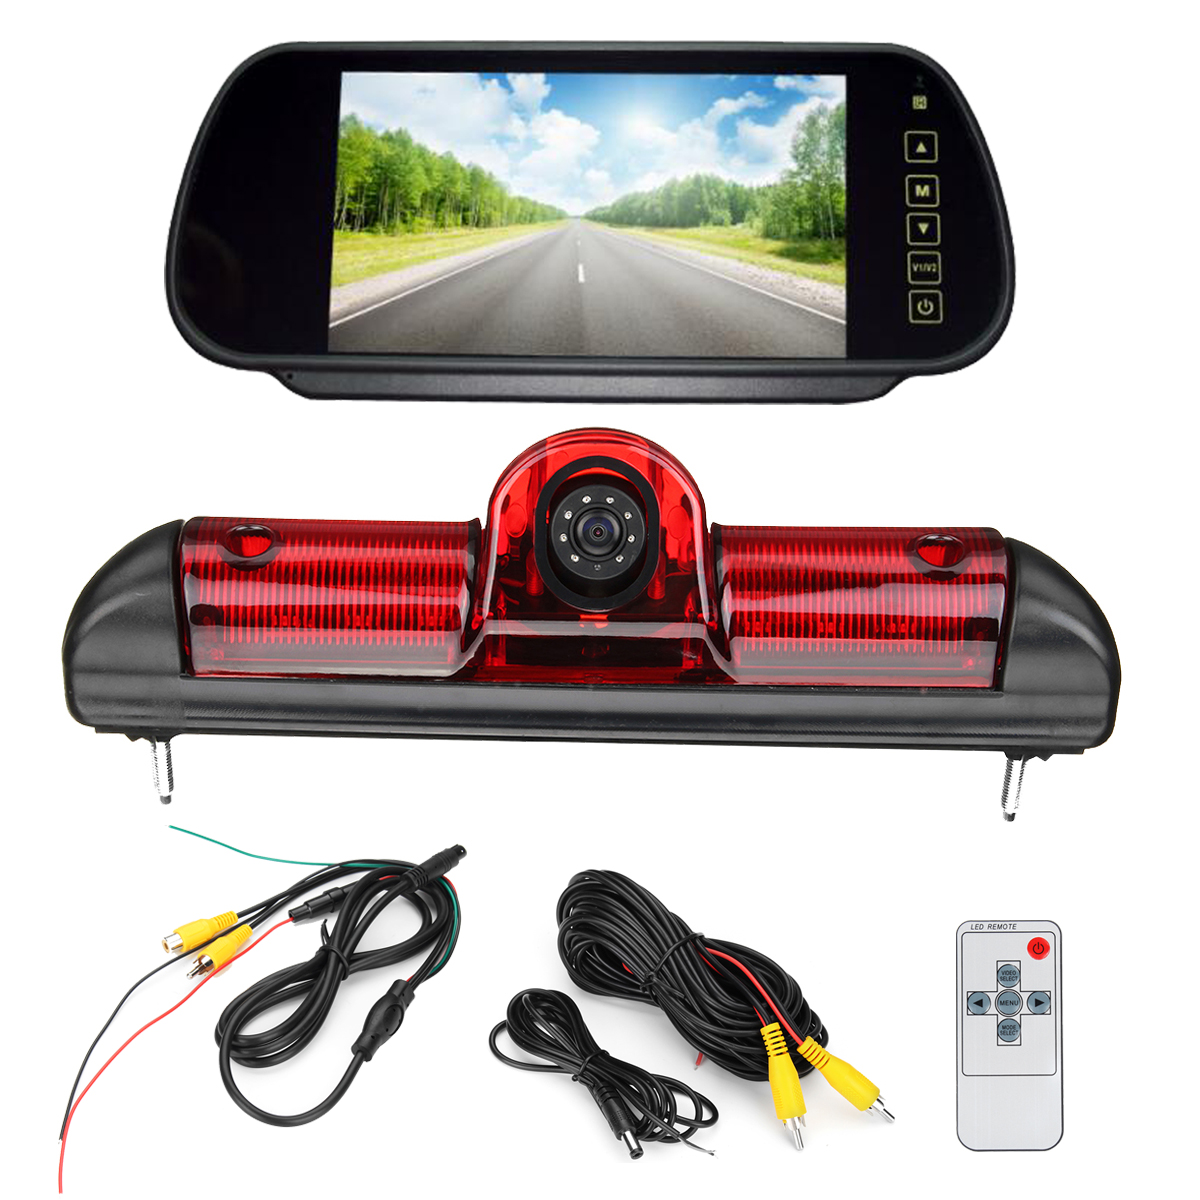 LED IR Brake Light Rear View Reversing Parking Camera 7 Inch Monitor Kit for Fiat Ducato For Citroen Relay for Peugeot Boxer new camera rear view reverse backup ccd camera for fiat ducato x250 citroen jumper iii peugeot boxer iii led ir parking camera page 5 page 10